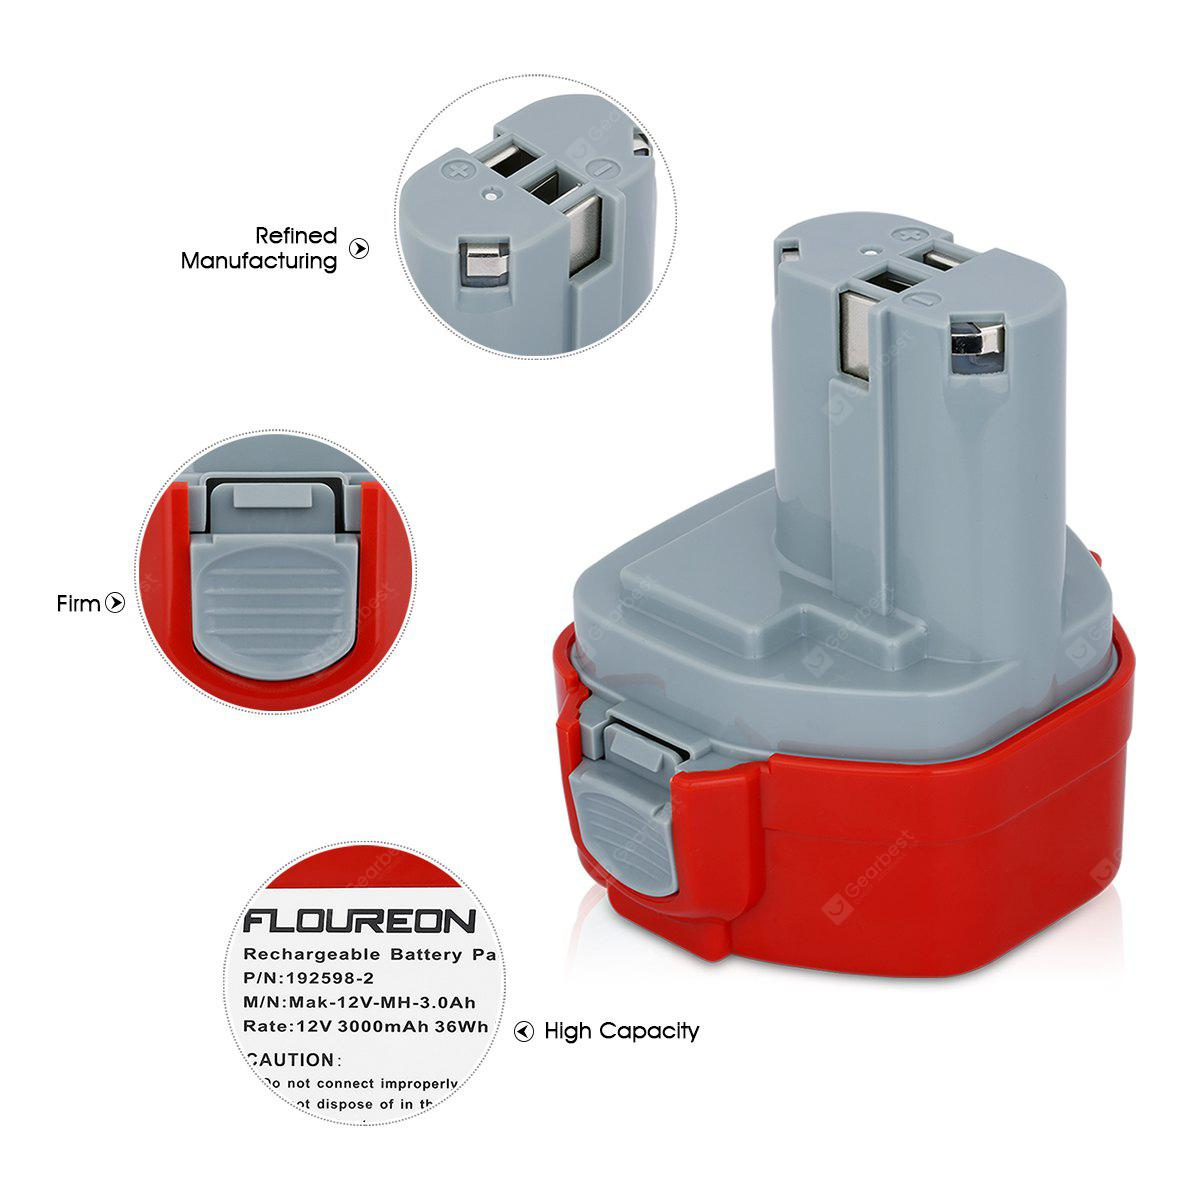 FLOUREON 12V 3000mAh Ni-MH Rechargeable Battery